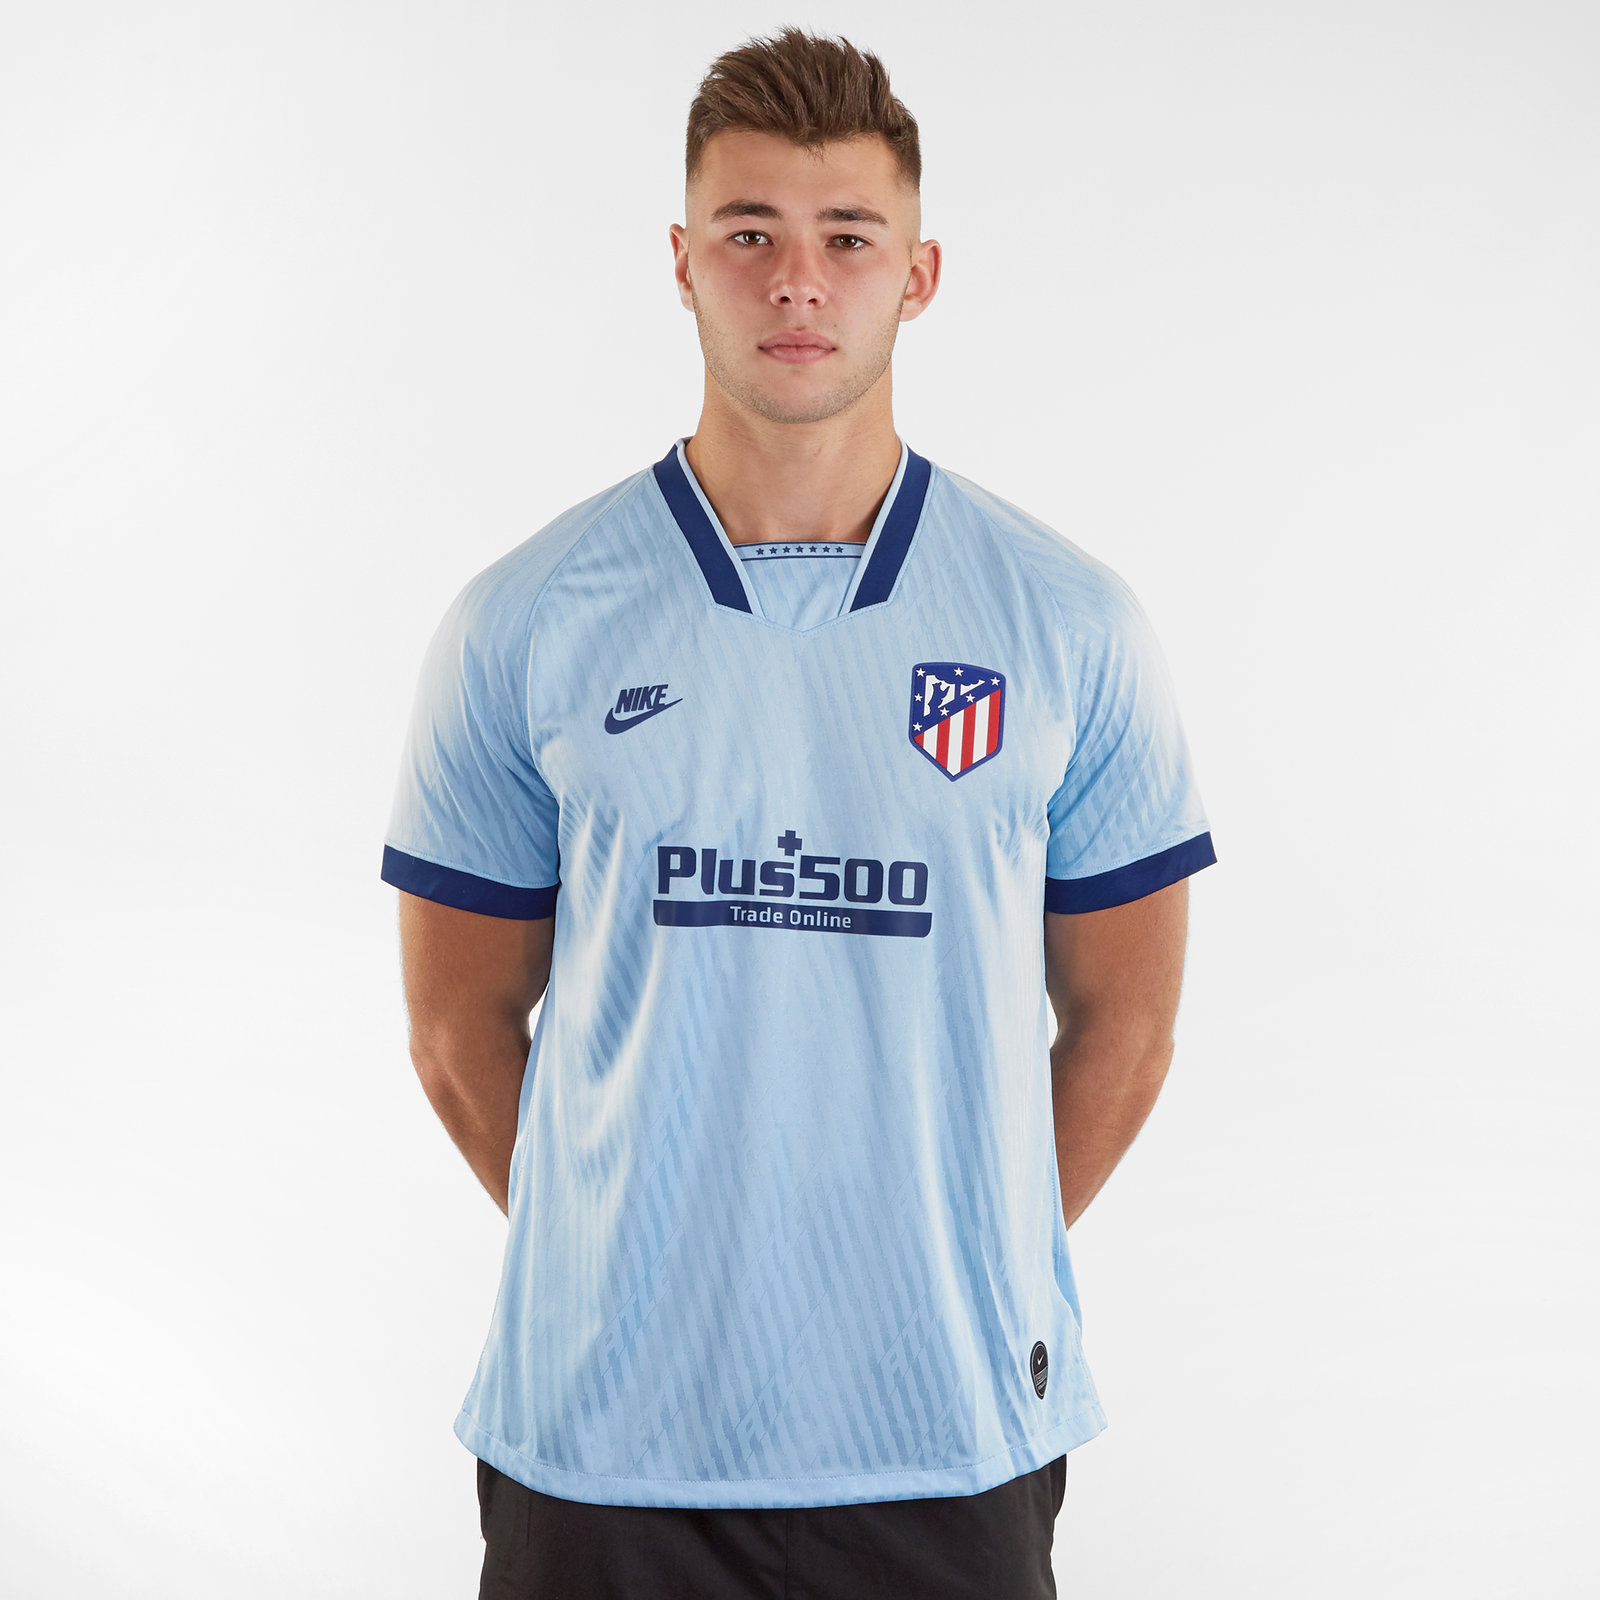 Atletico Madrid 19/20 3rd short sleeve Replica Football Shirt